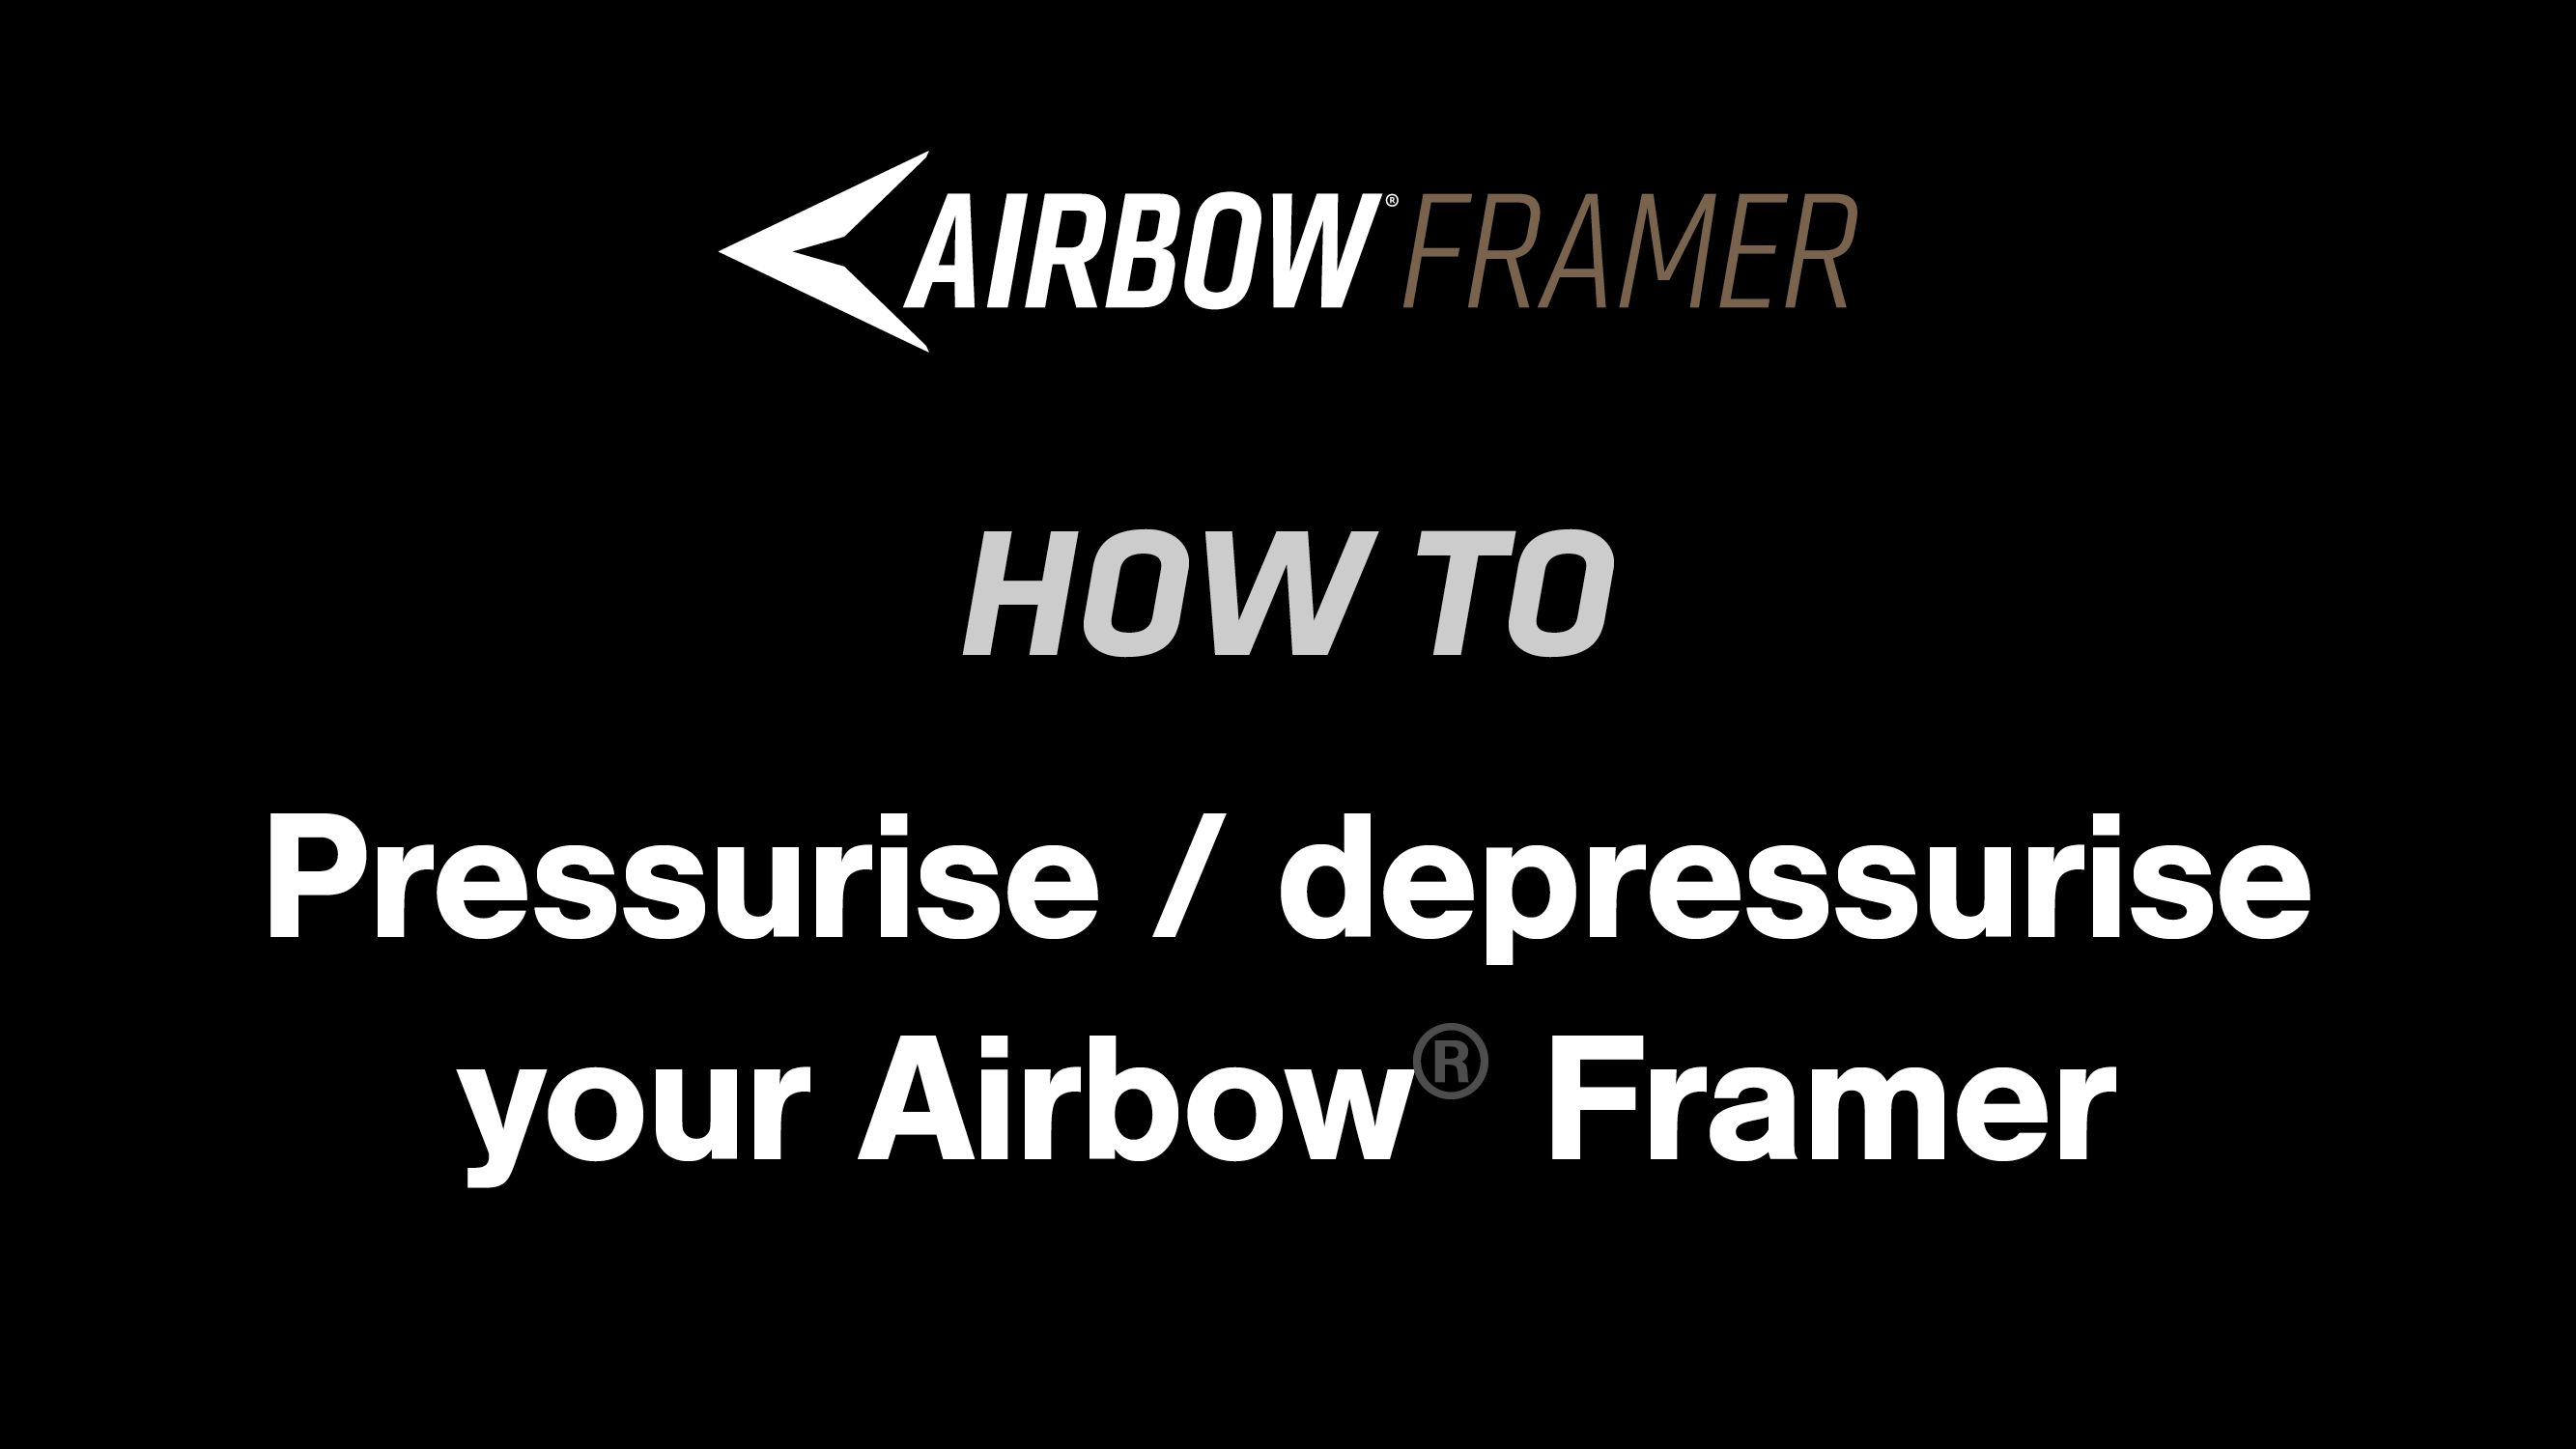 How to: Pressurise and depressurise